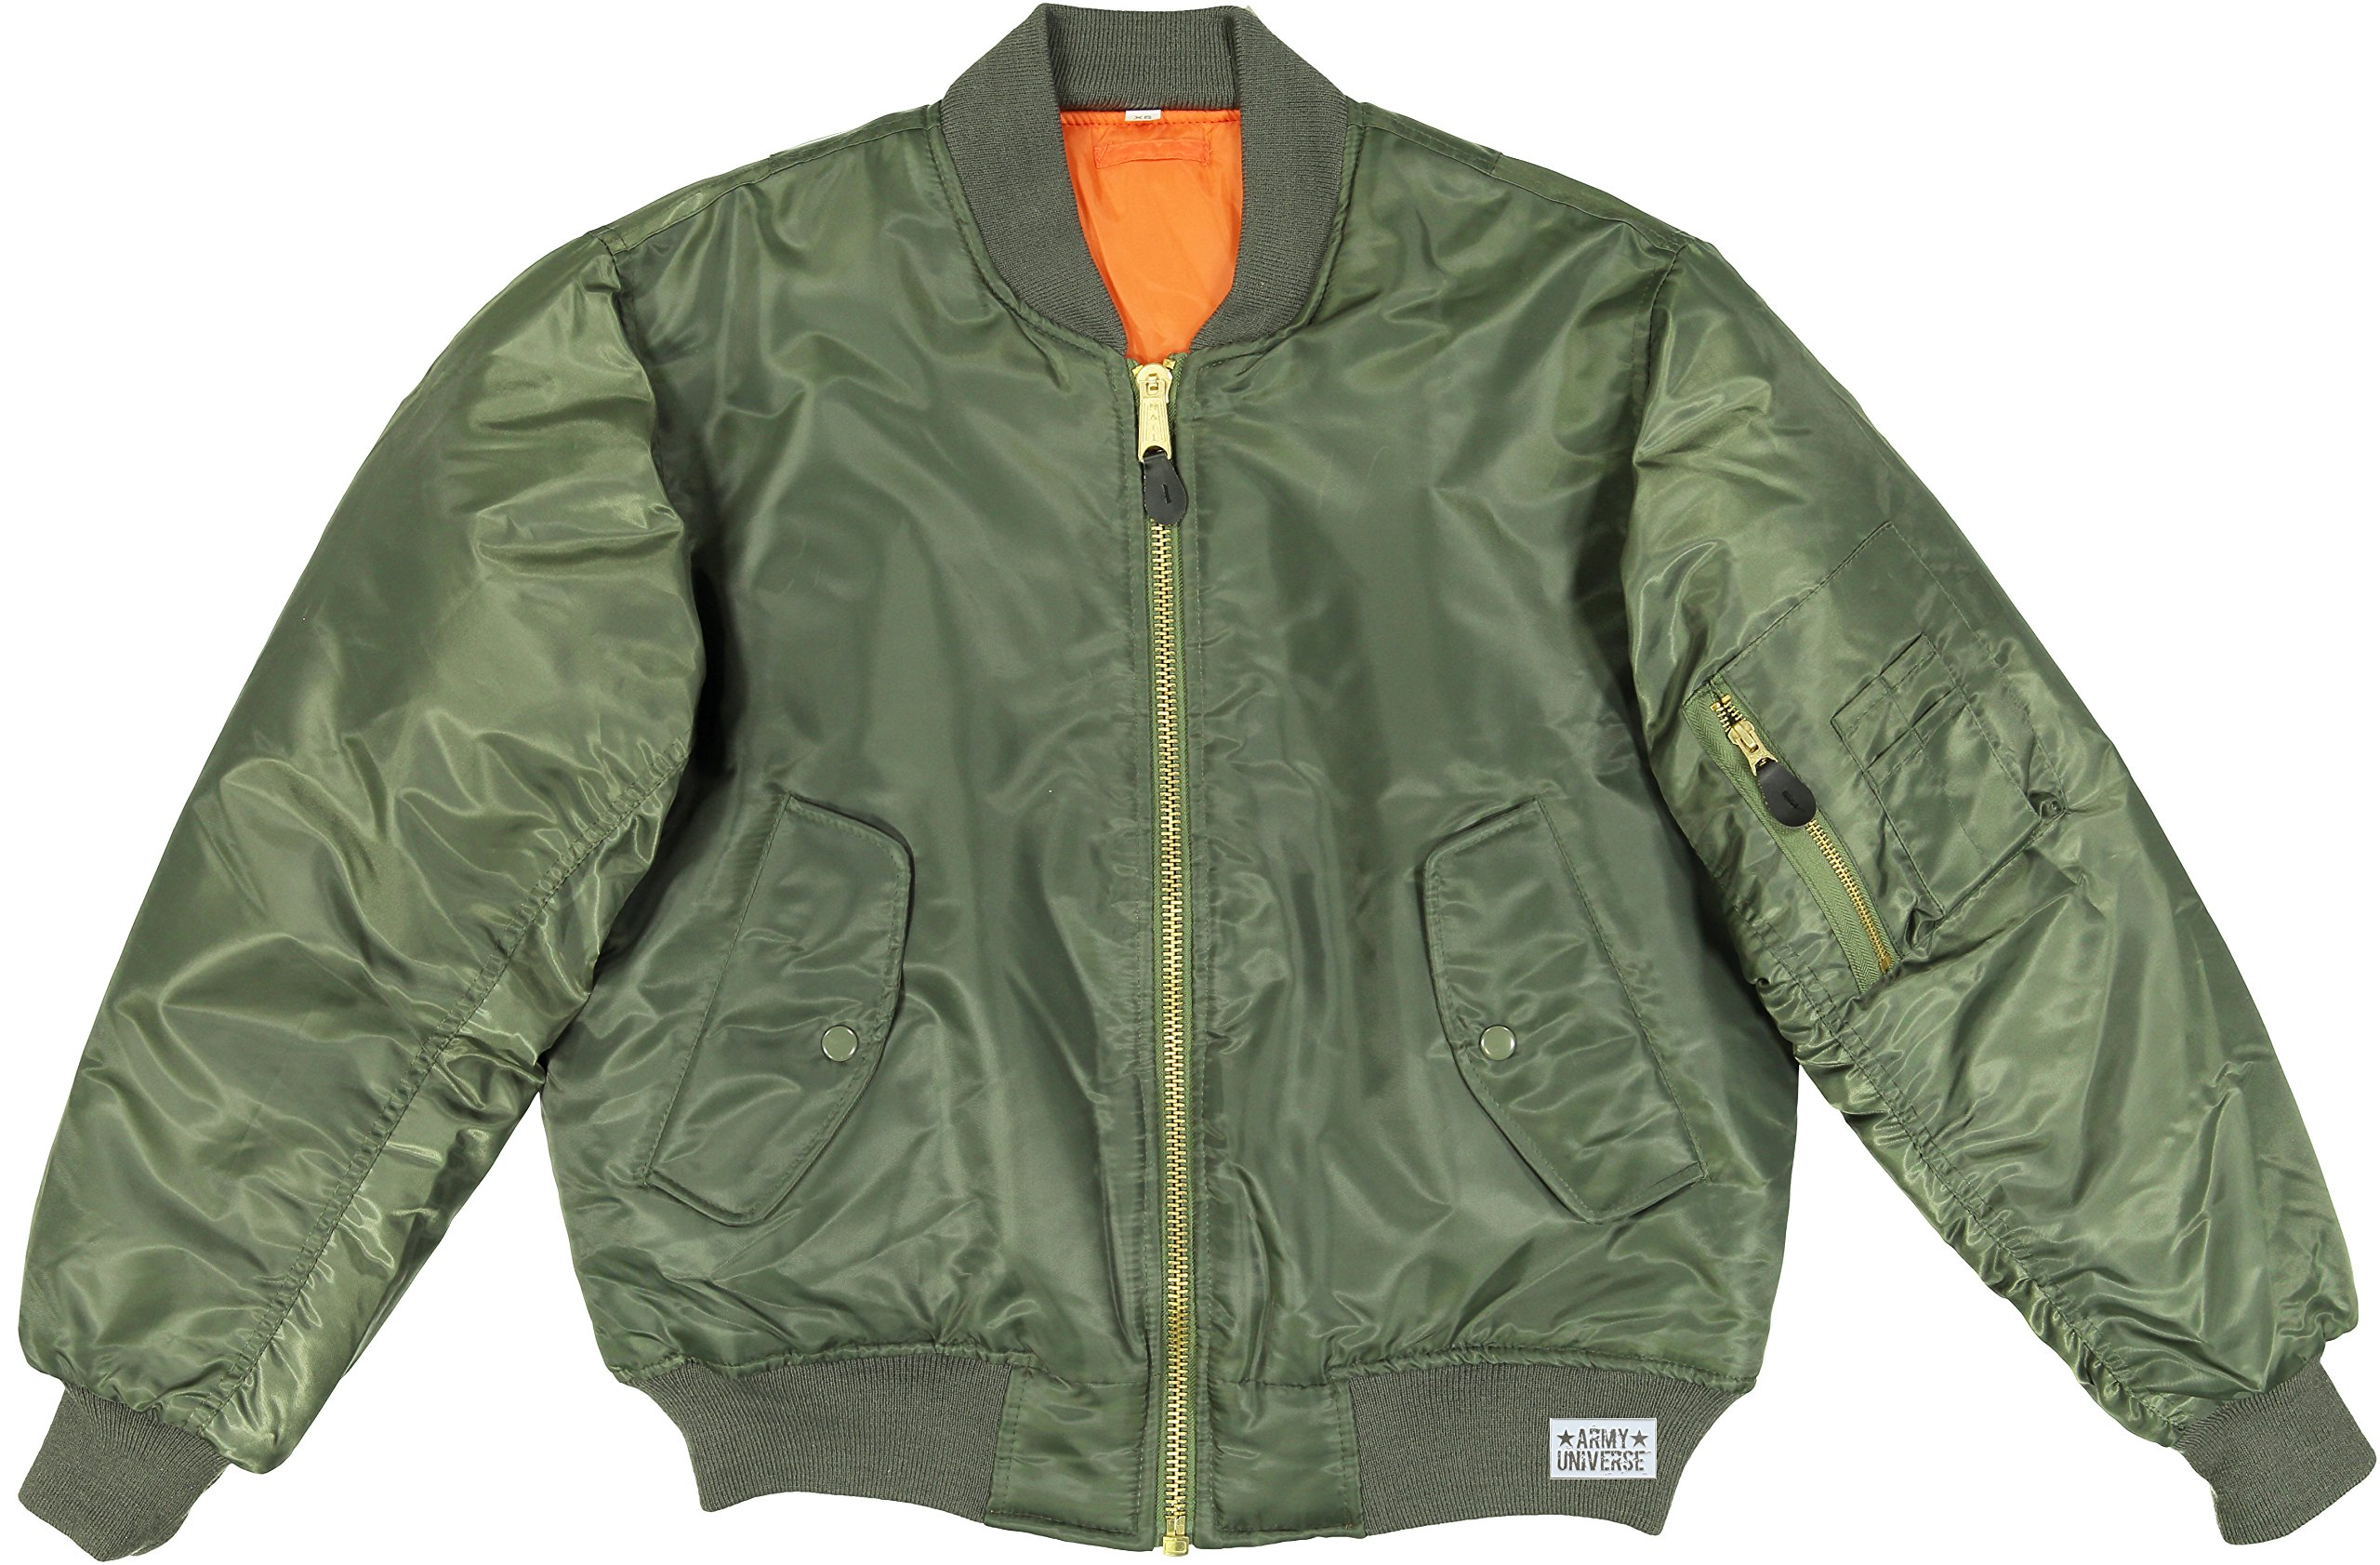 Army Universe MA-1 Air Force Military Bomber Flight Jacket with Pin (Sage Green, Size 6X-Large - Chest 65'' - 69'')